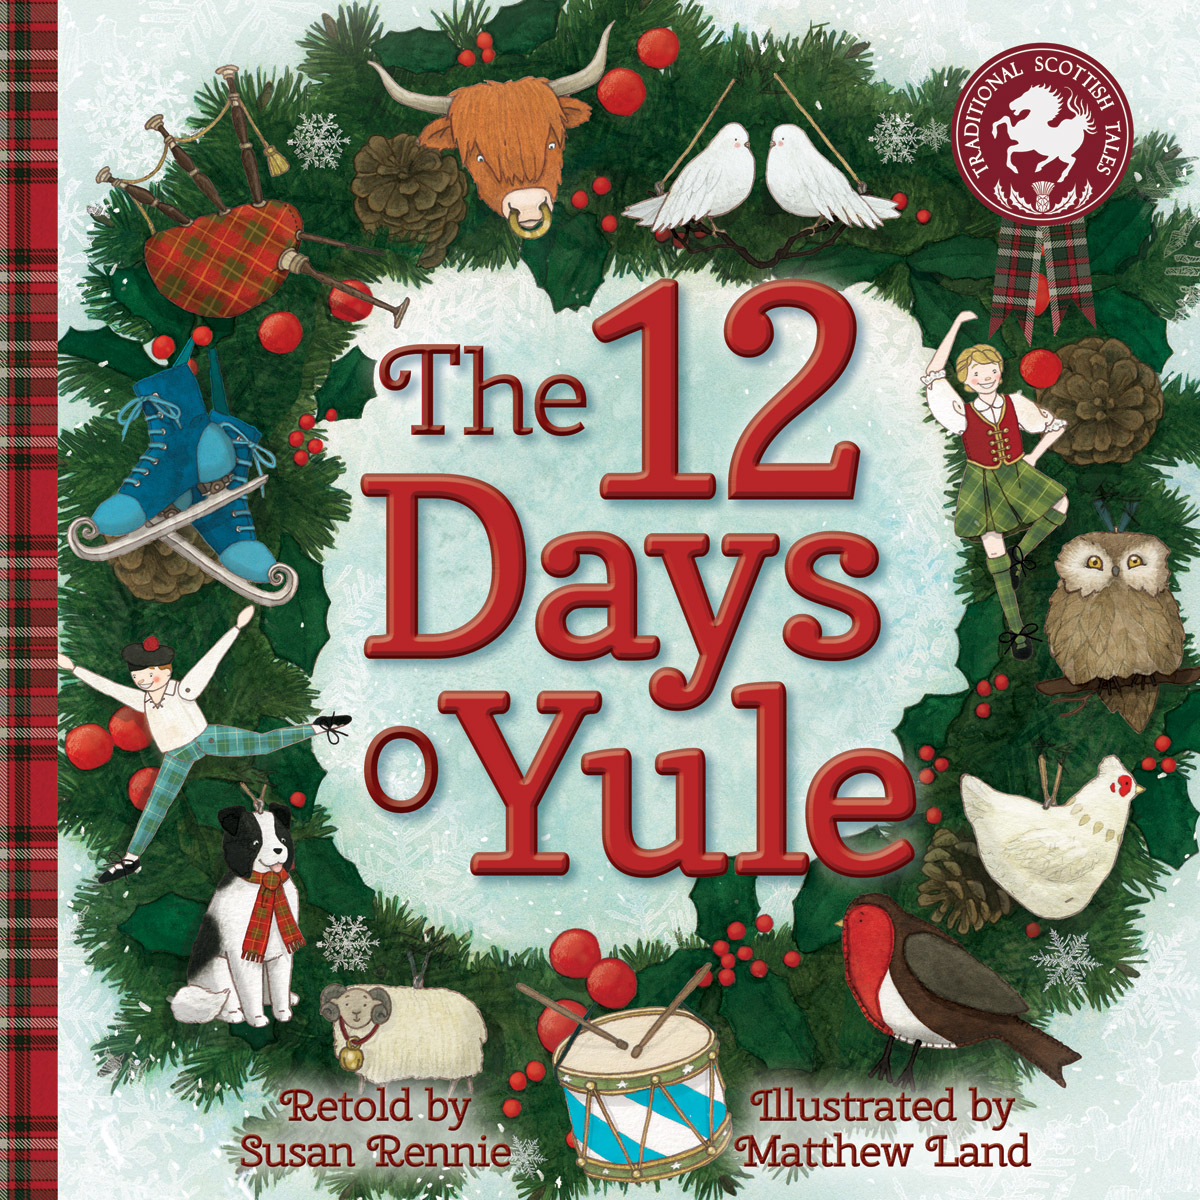 Translating The Twal Days o Yule